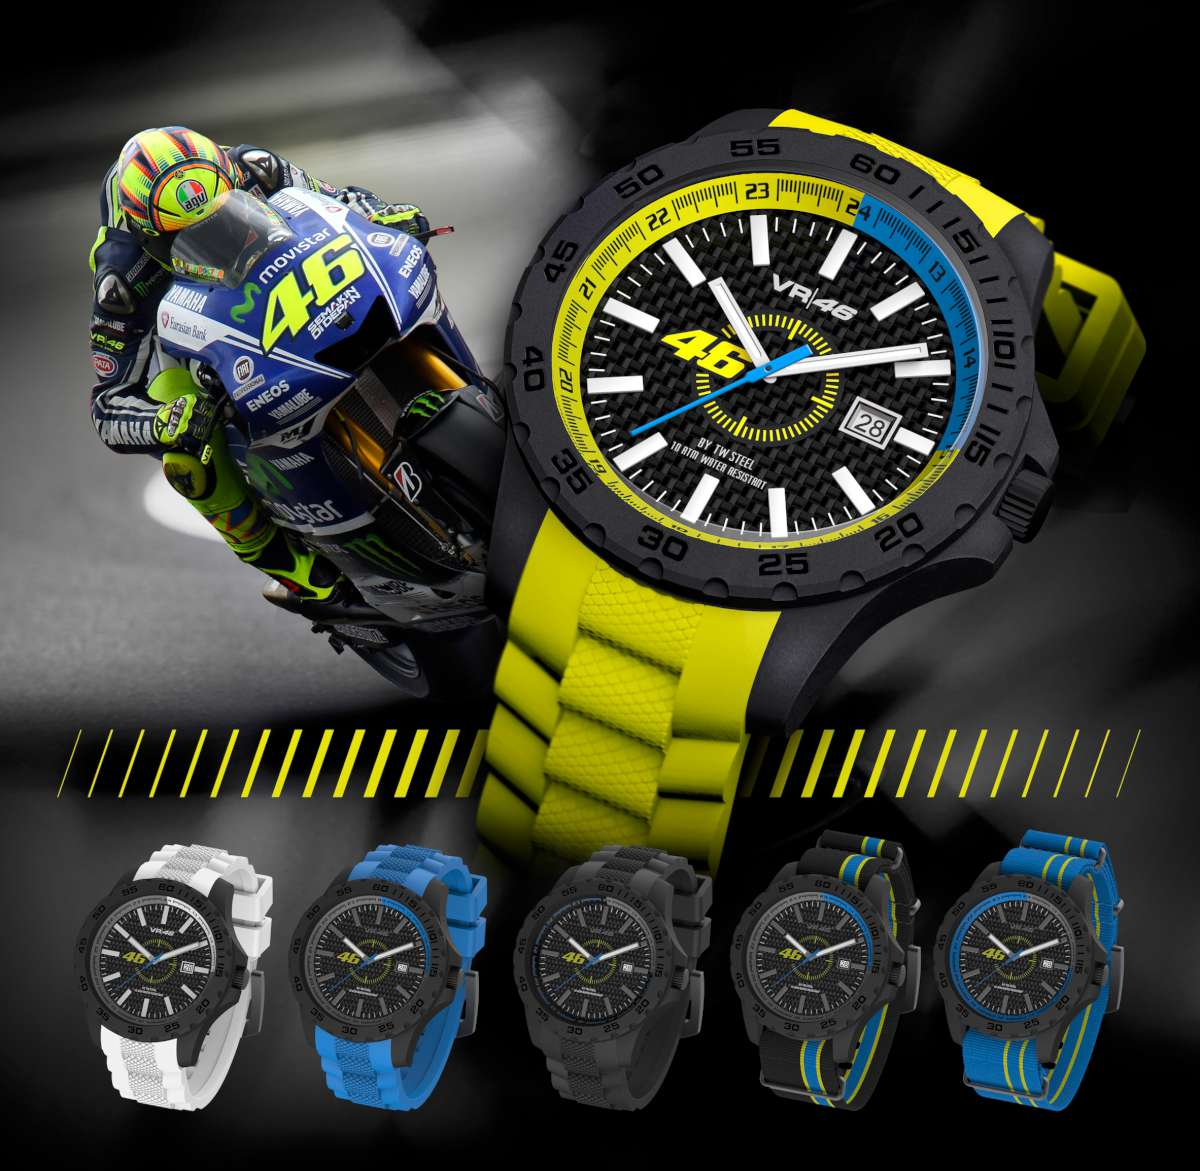 The VR|46 / Yamaha Factory Racing 'By TW Steel' collection, celebrating Valentino Rossi